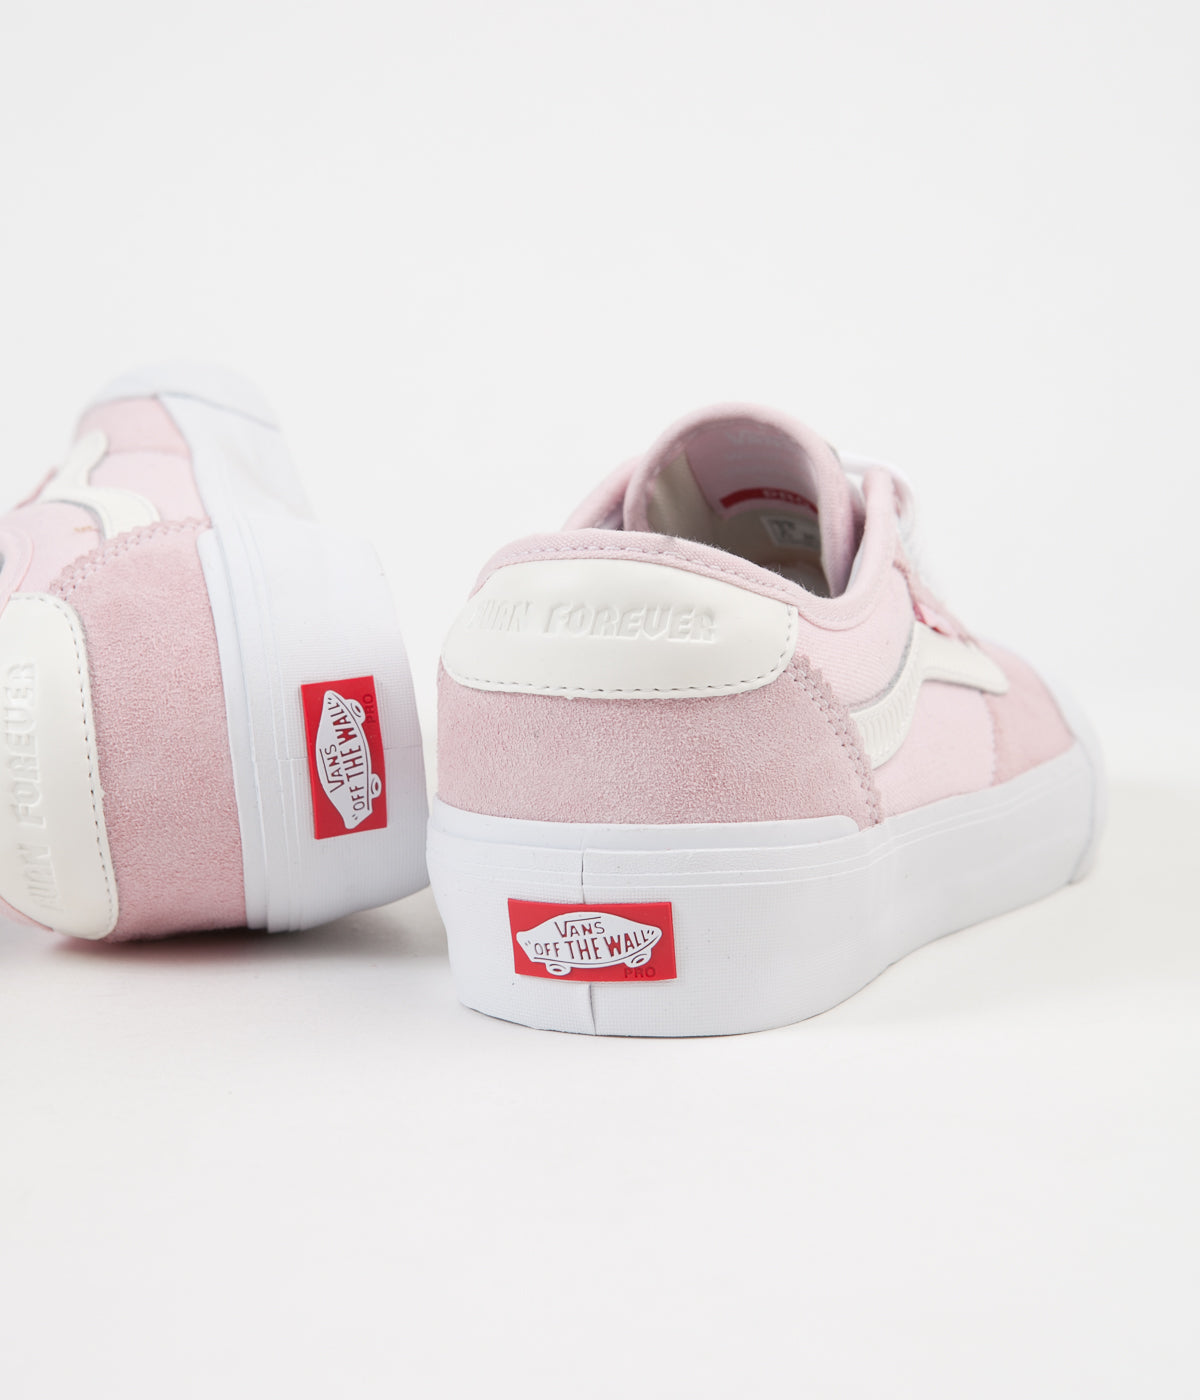 14848458ae8 ... Vans x Spitfire Chima Pro 2 Shoes - Pink ...